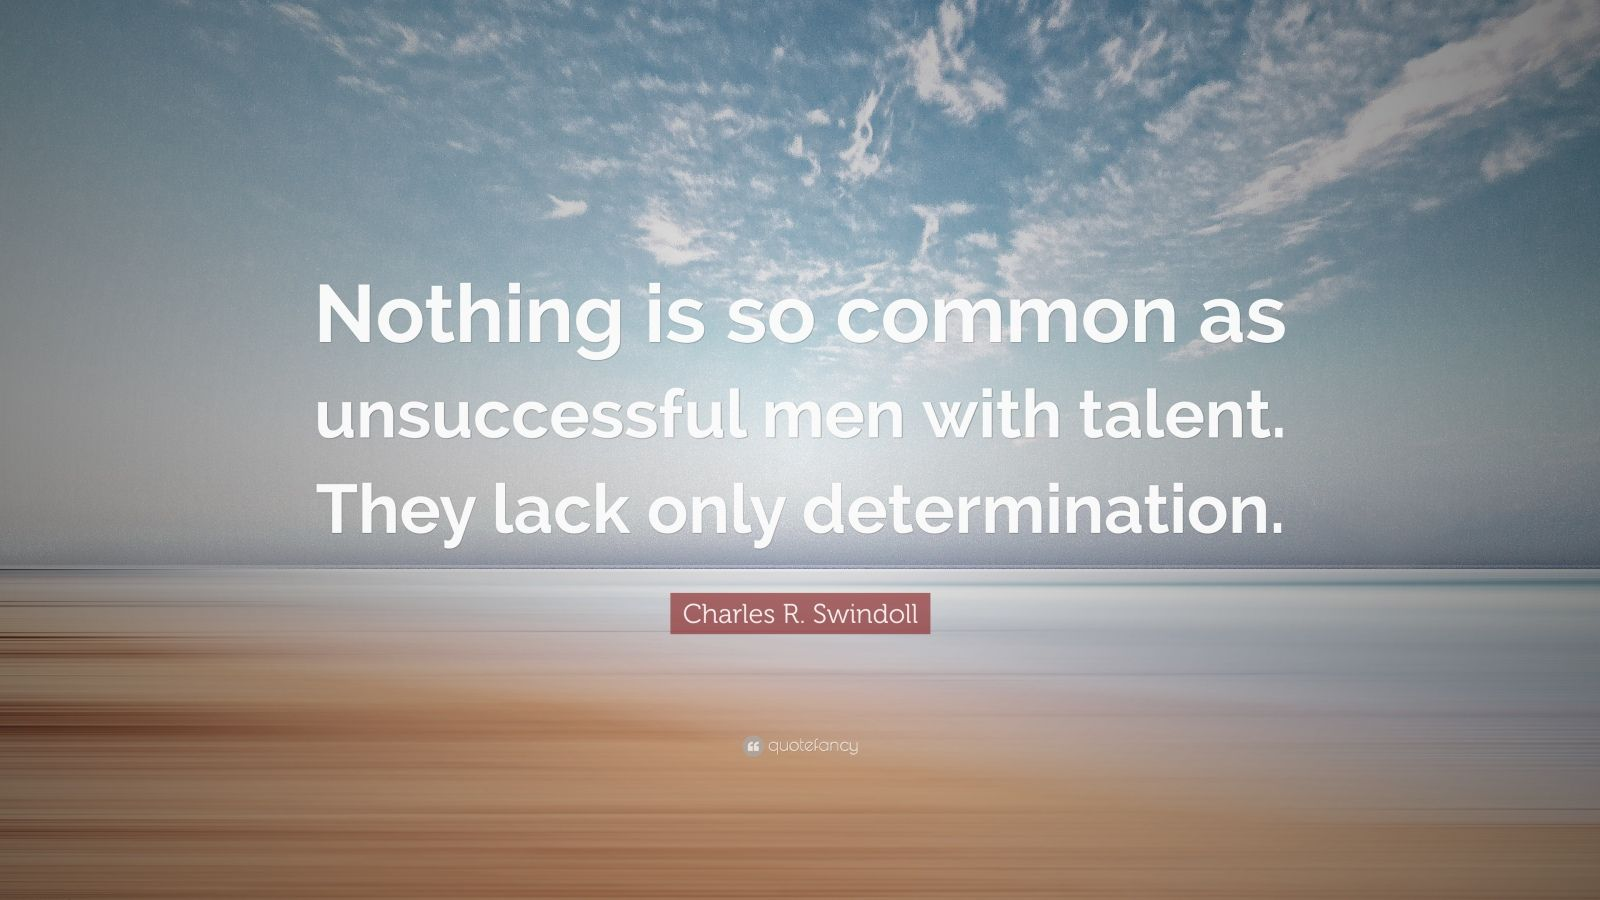 """Charles R. Swindoll Quote: """"Nothing is so common as unsuccessful men with talent. They lack only determination."""""""